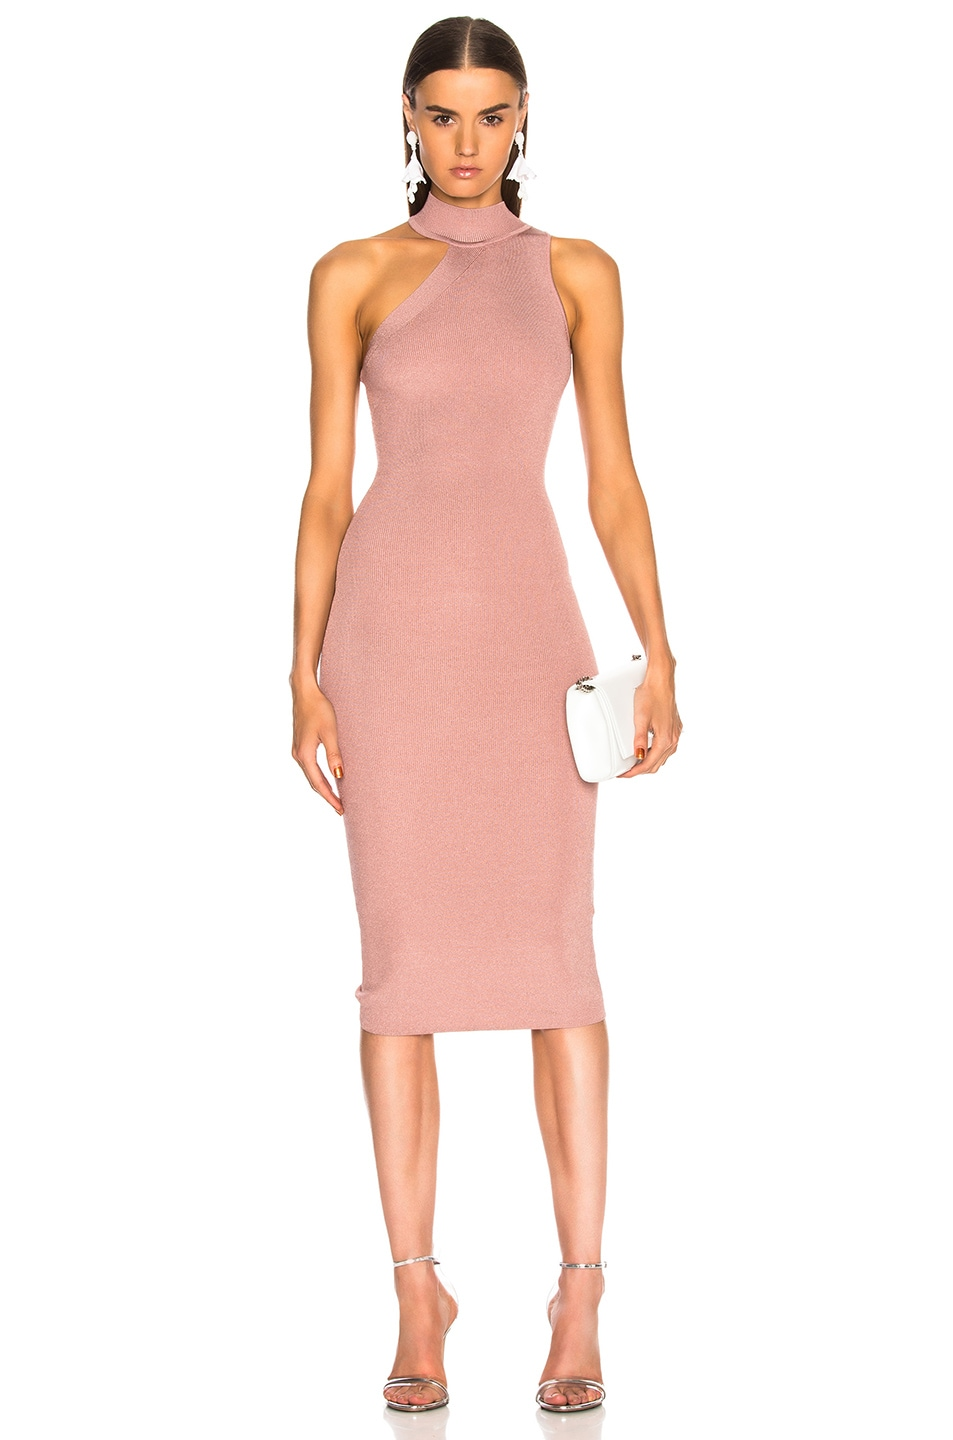 Cushnie et Ochs Baila Dress in Pink